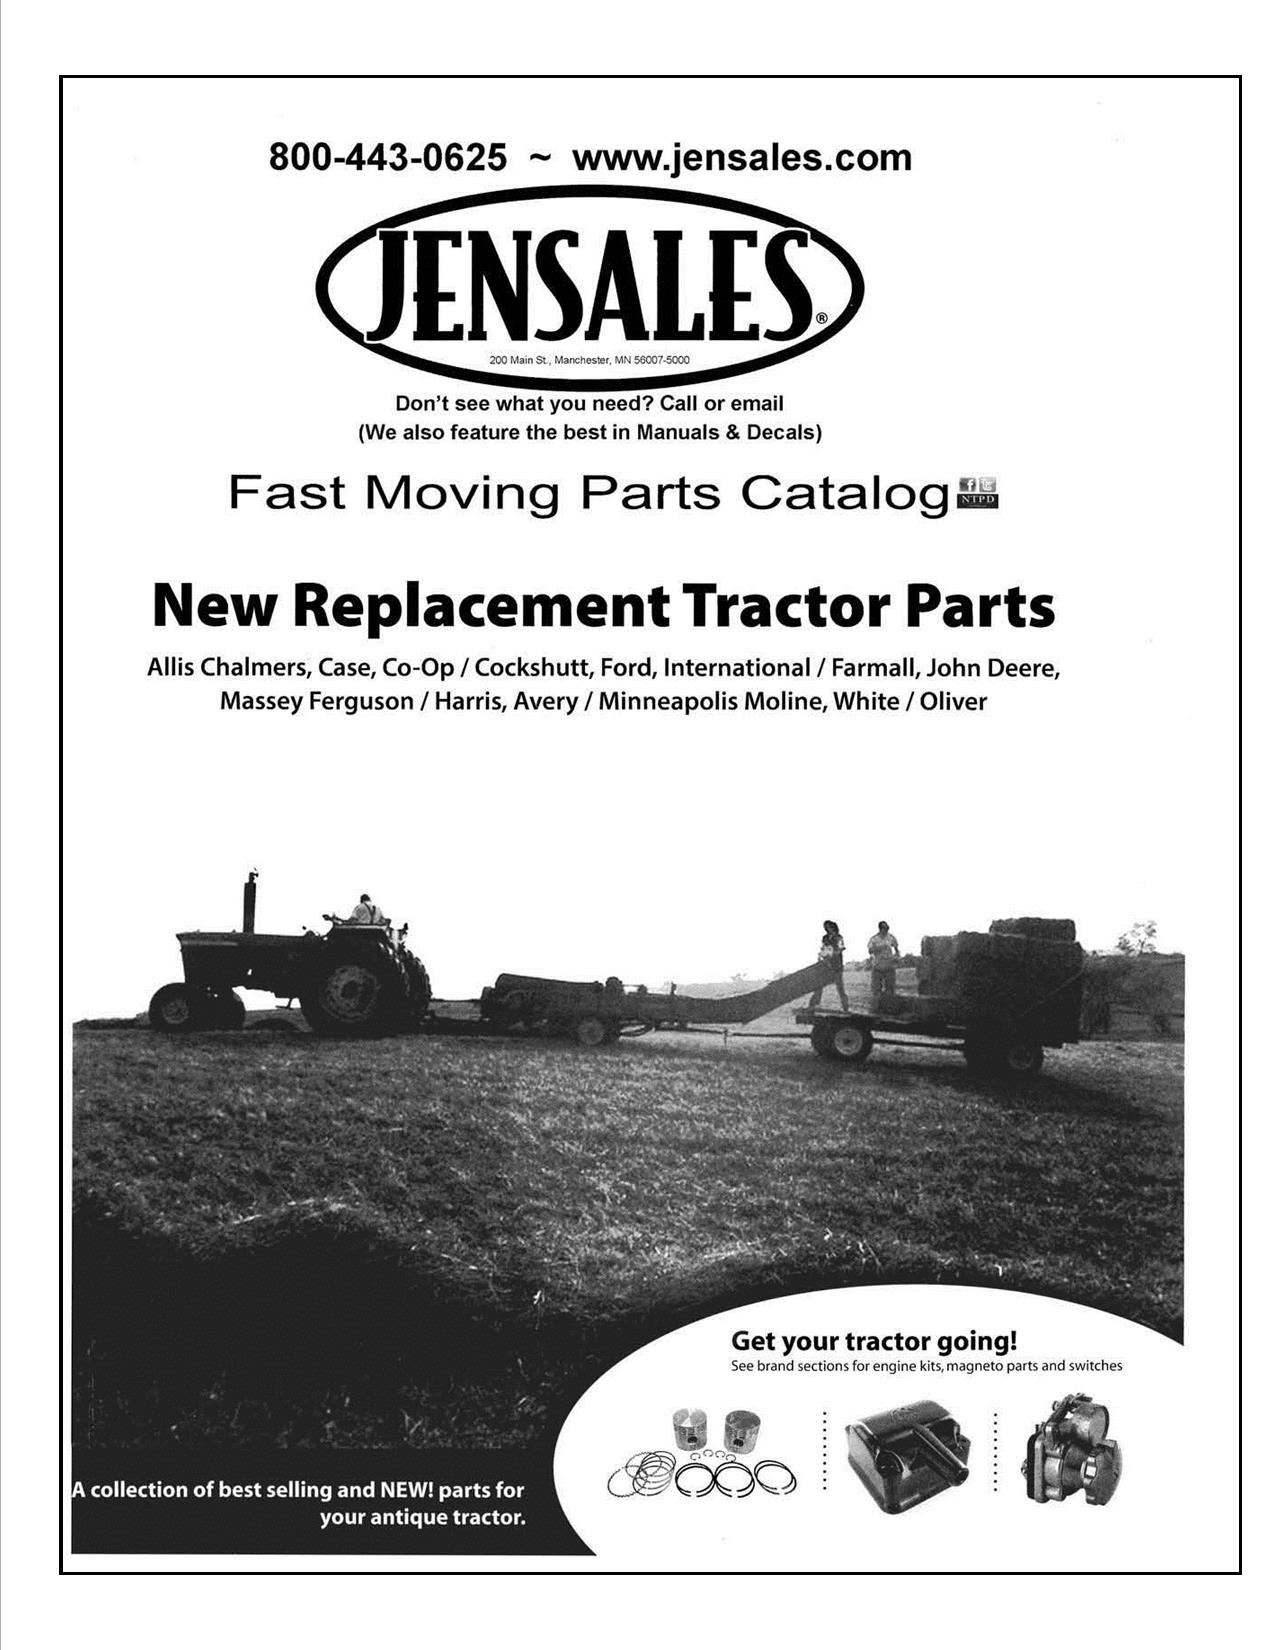 They are supplemental catalogs of Parts not yet available on our website,  but are available if you call in and place your order.